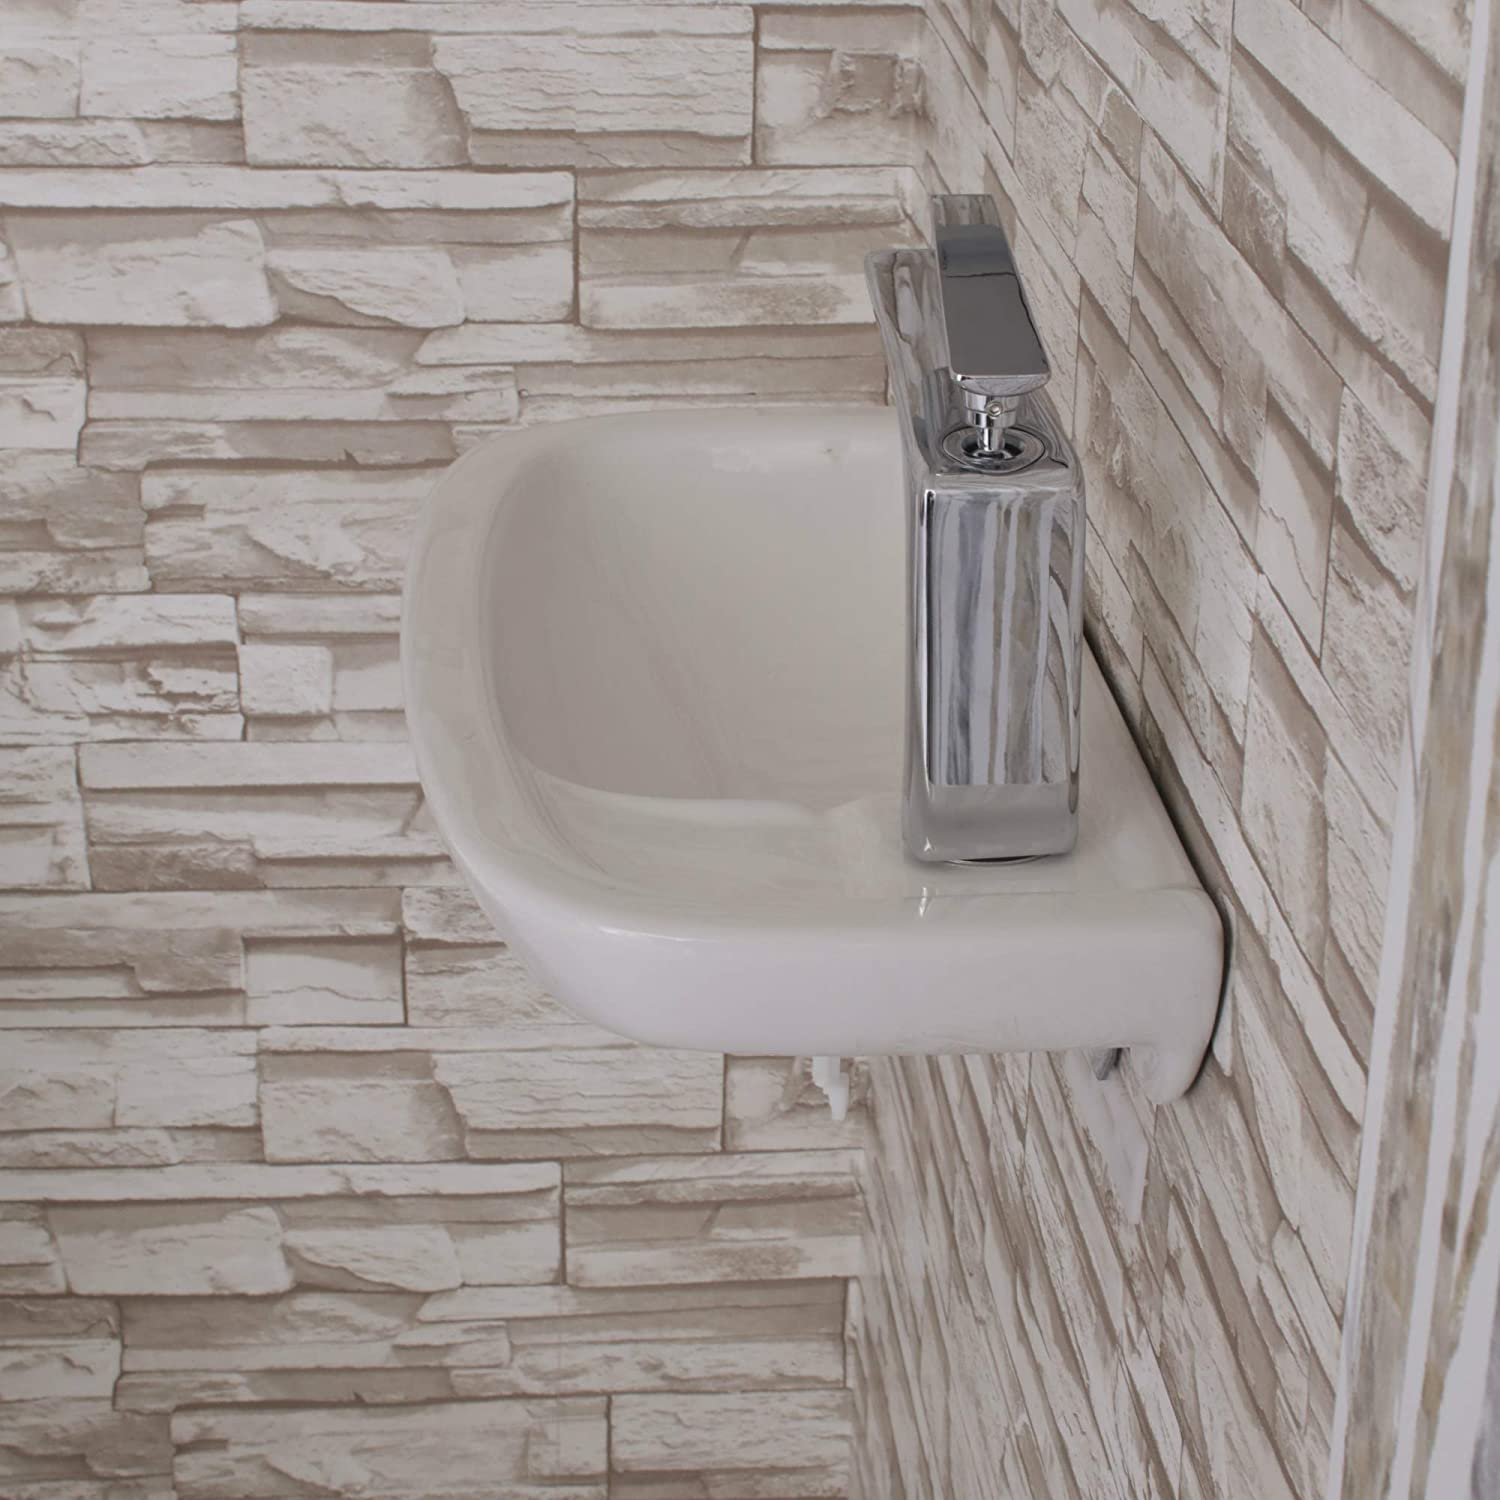 Buy Fine Fixtures Small Wall Mounted Bathroom Sink Mounting Hardware Included Online In Hungary B012tu3msk